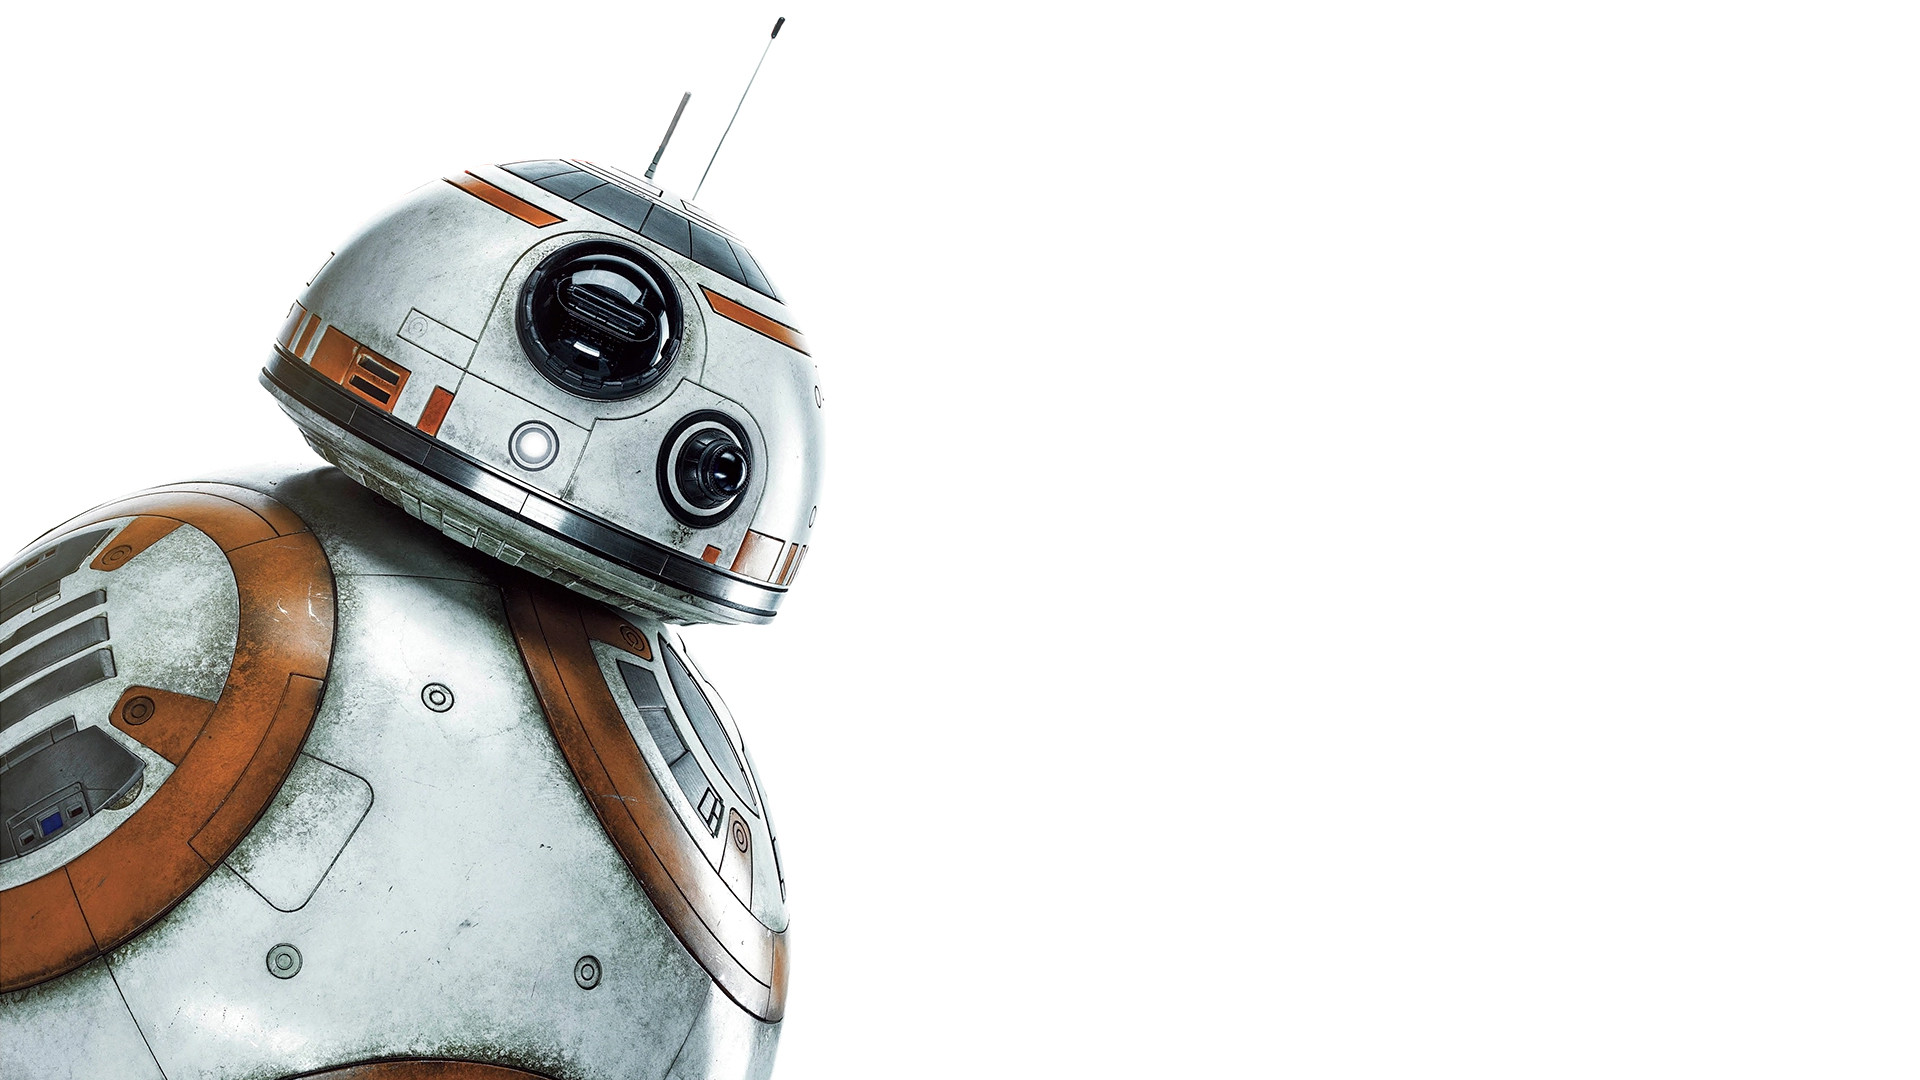 BB-8 Unit images wp8 HD wallpaper and background photos